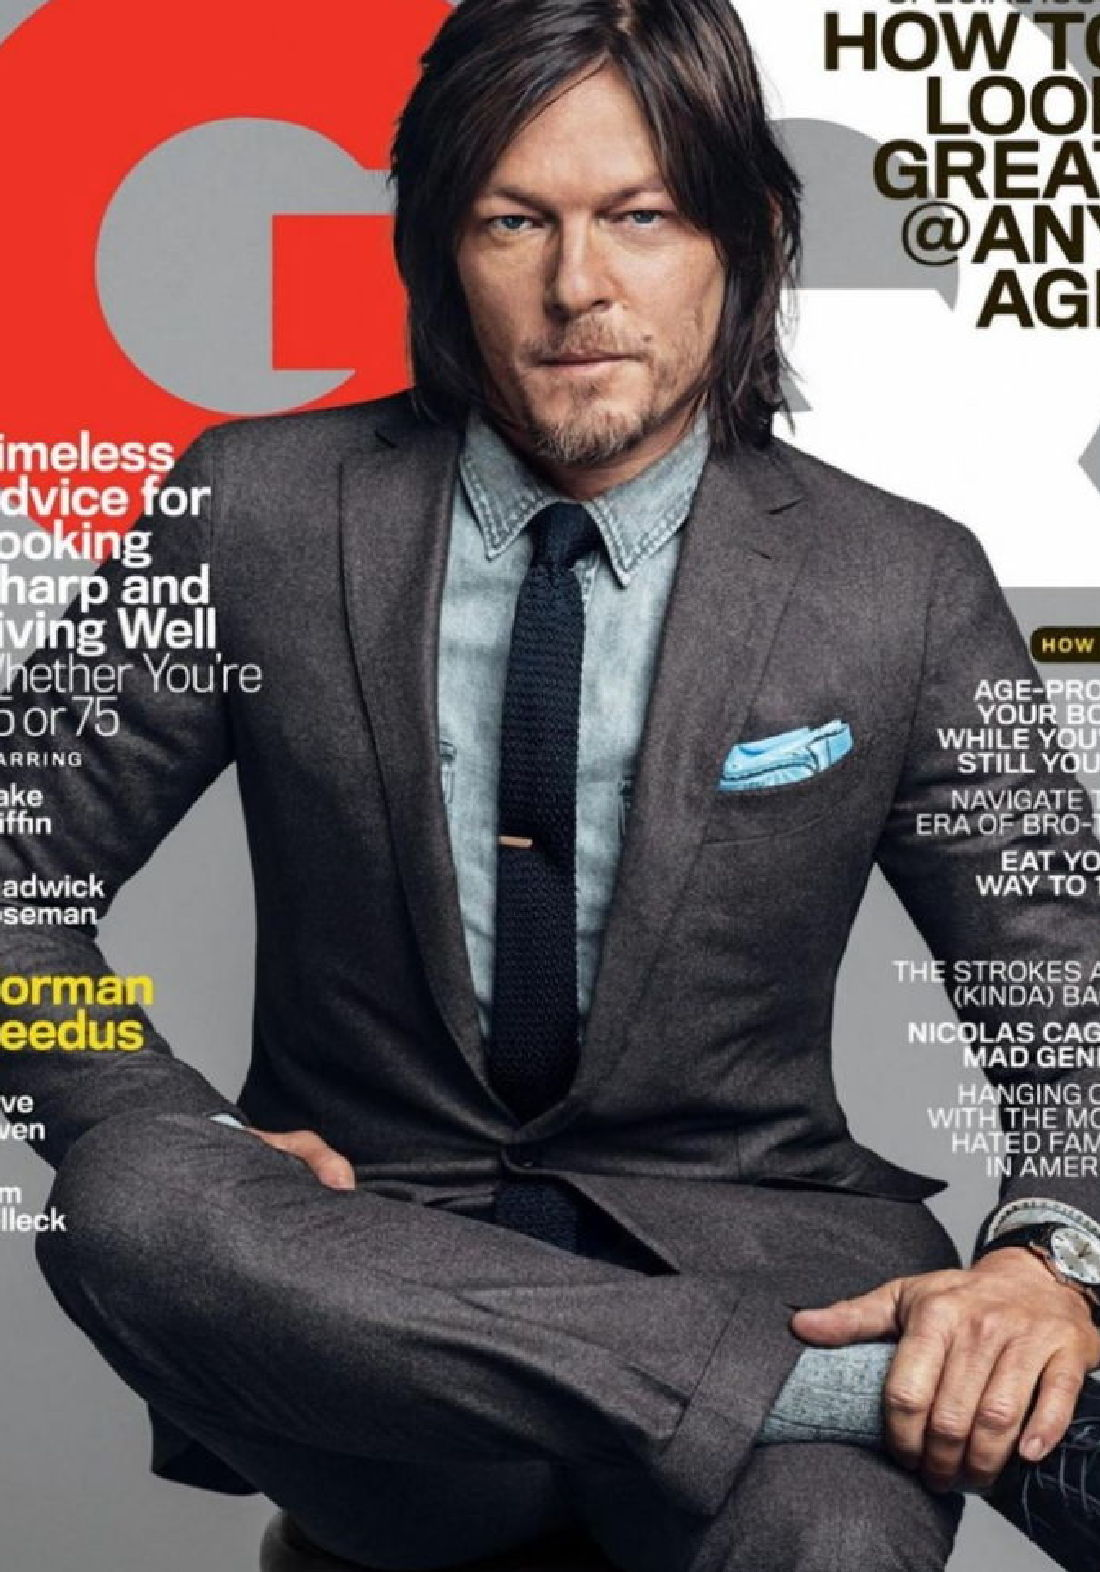 norman-reedus-gq-cover